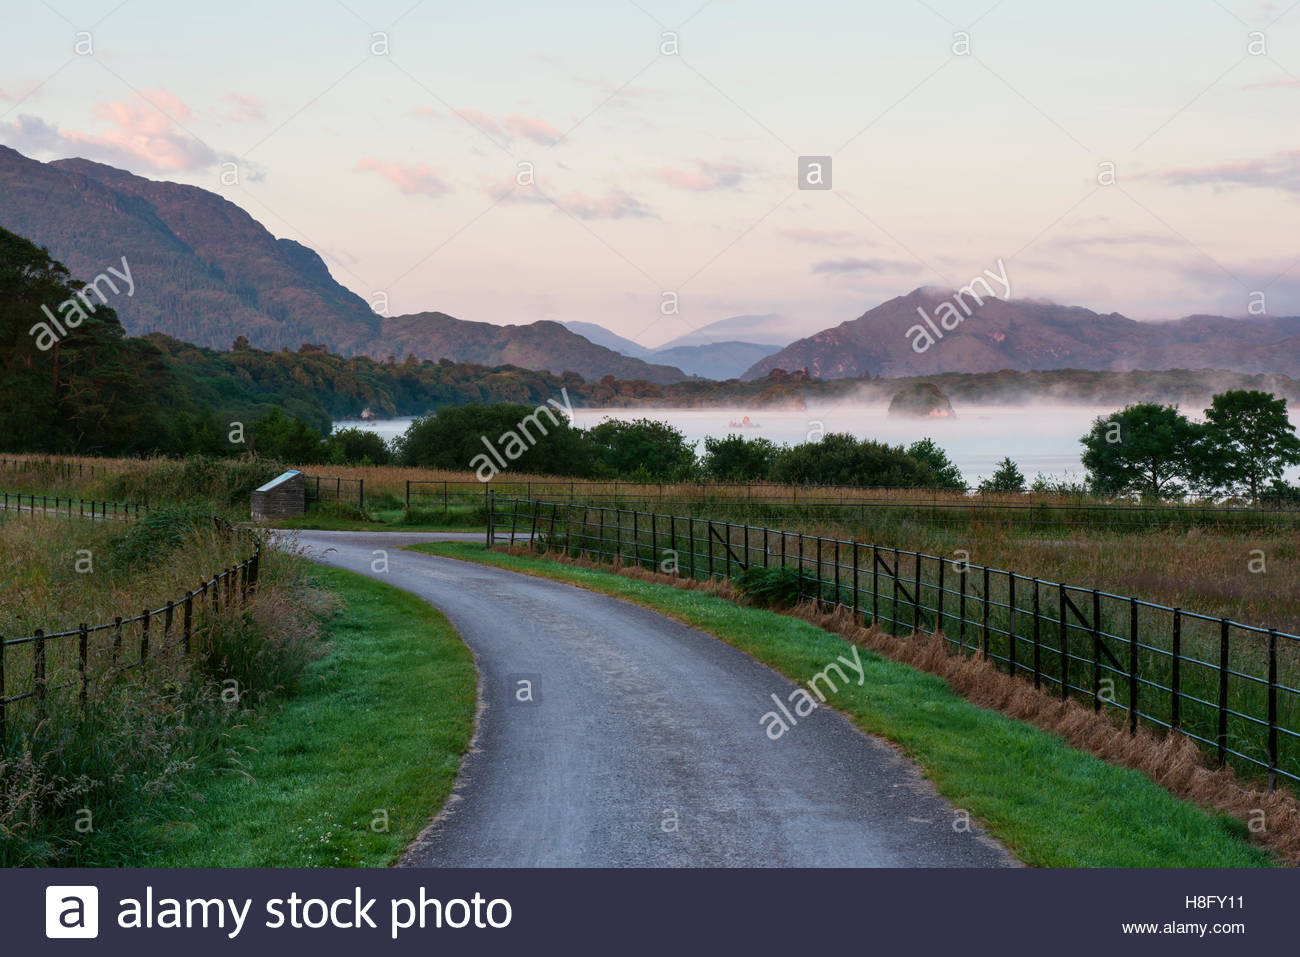 Countryside view with a lake in misty early morning hour in Killarney National Park Kerry Ireland - Stock Image